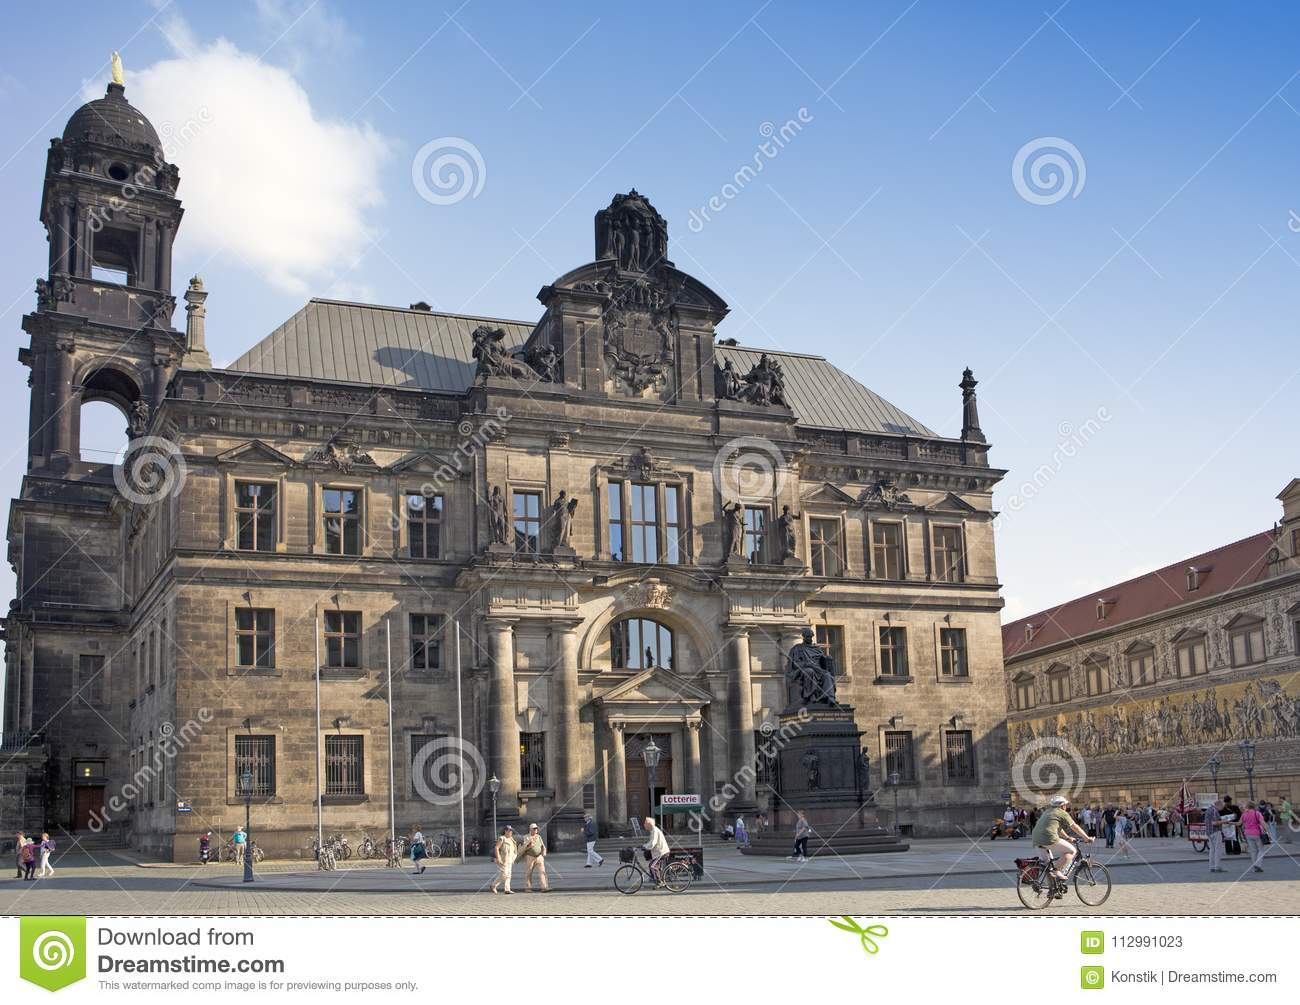 DRESDEN, GERMANY - SEPTEMBER 17, 2014: The monument to Frederick Augustus I king of Saxony near the Court of Appeal